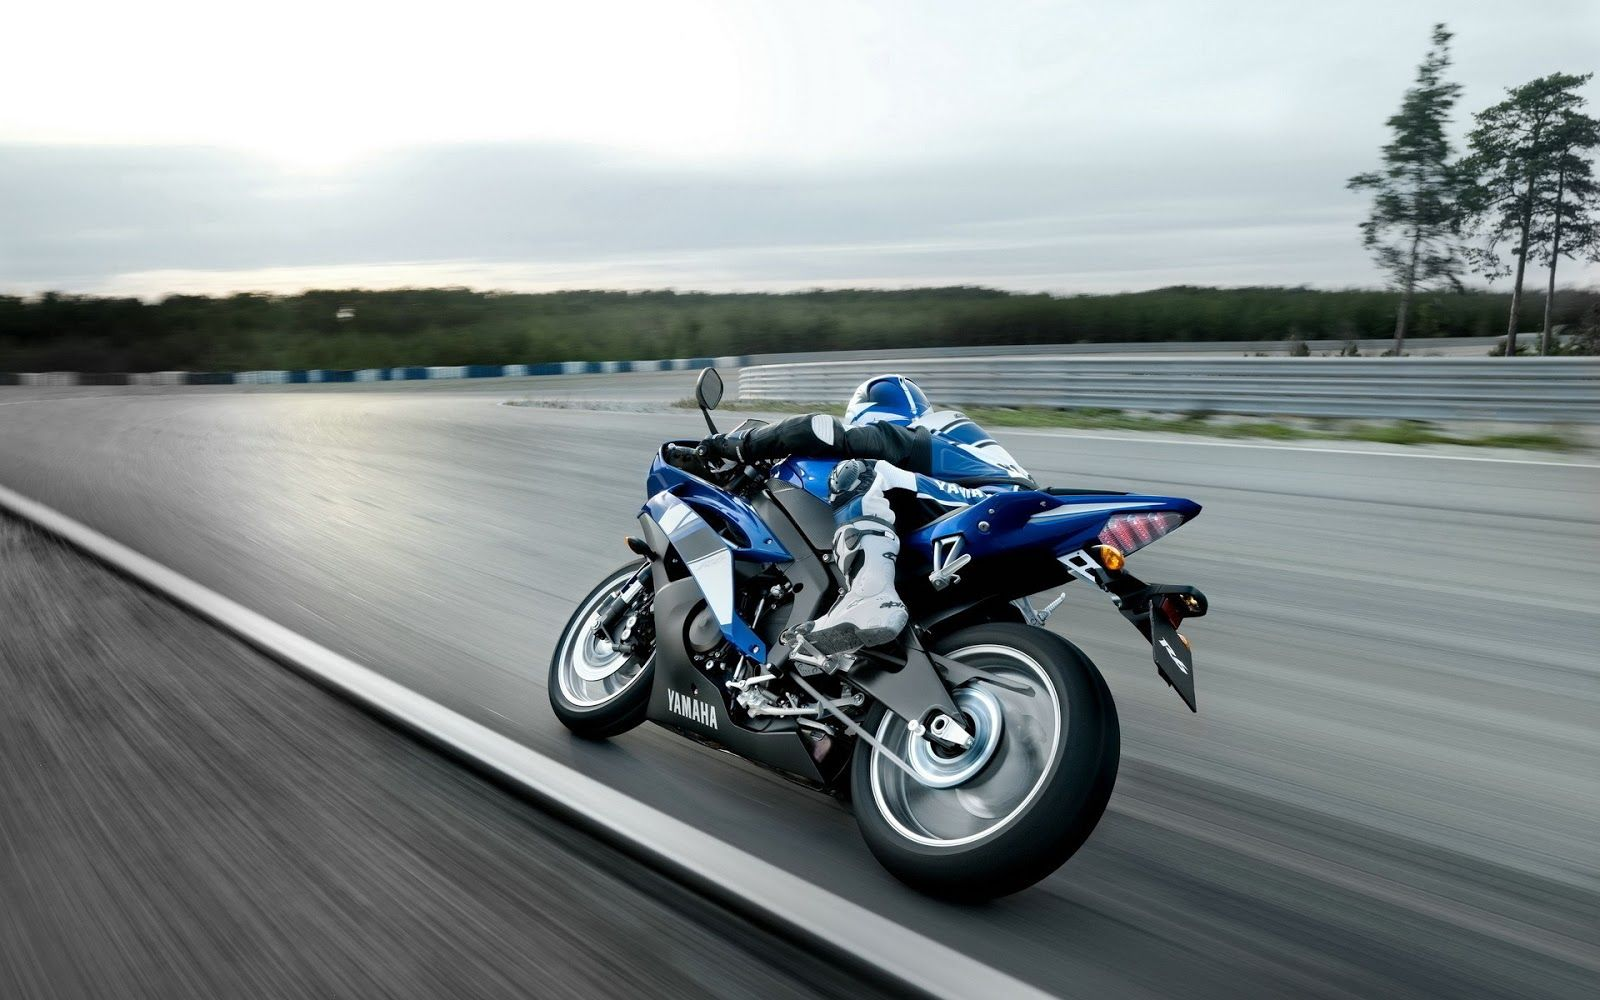 Beautiful How Fast Was The Fastest Motorcycle Speeding Ticket Ever?